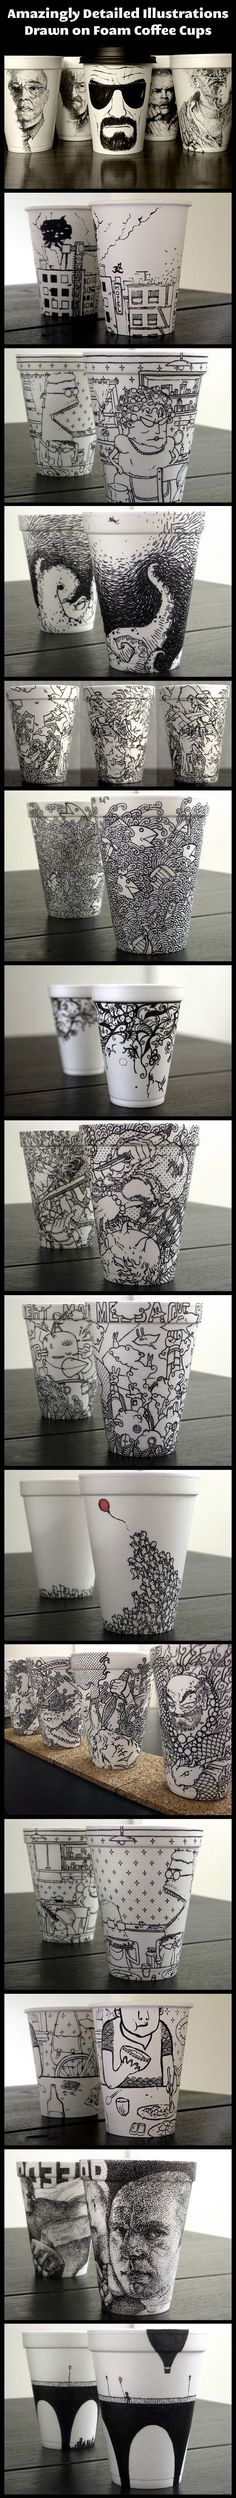 We have rounded up some incredible coffee cup illustrations created by a geeky artist.